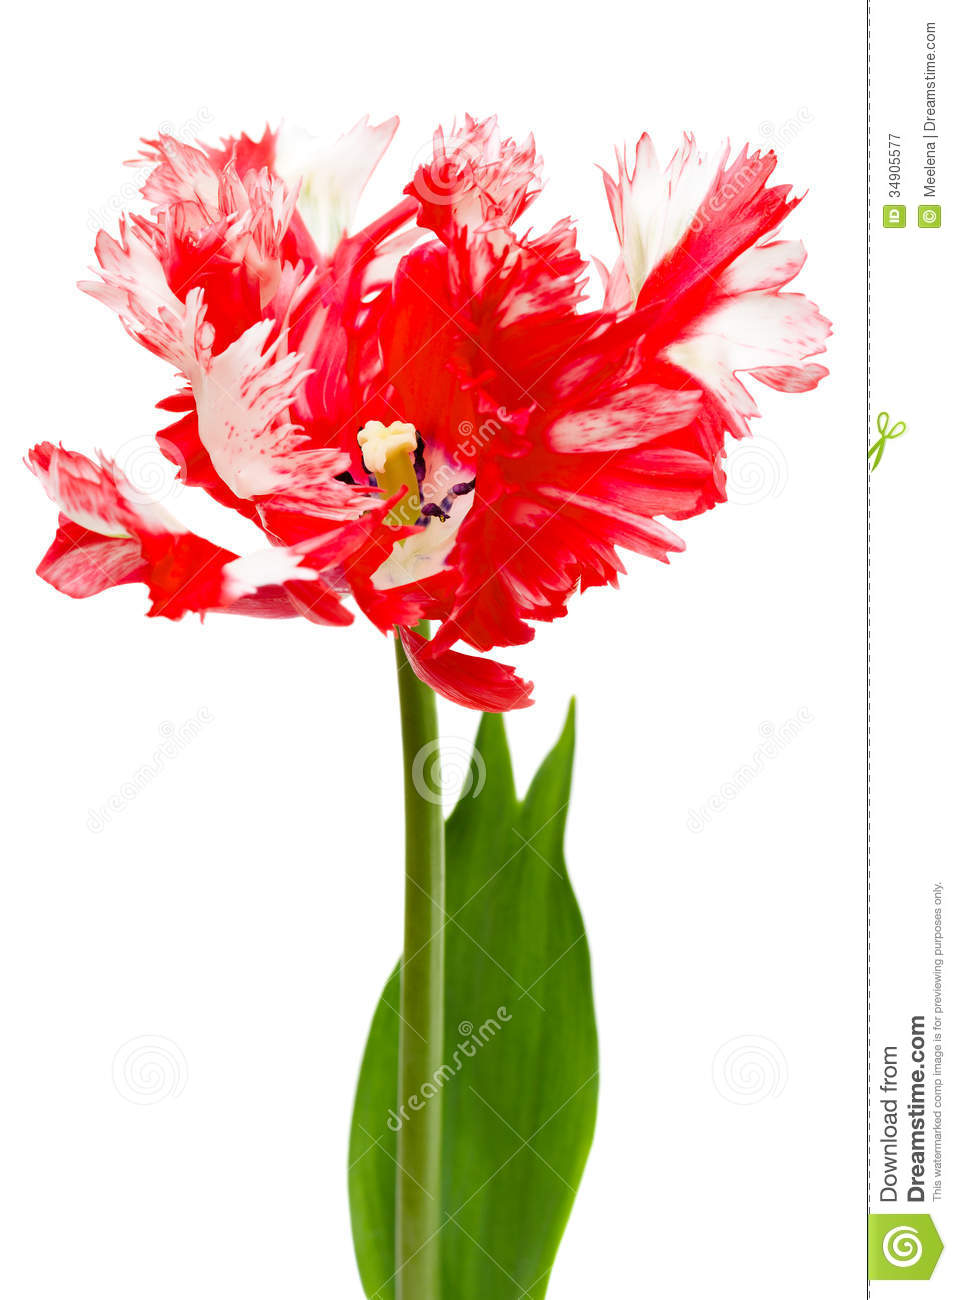 Red And White Parrot Tulip Royalty Free Stock Photography.